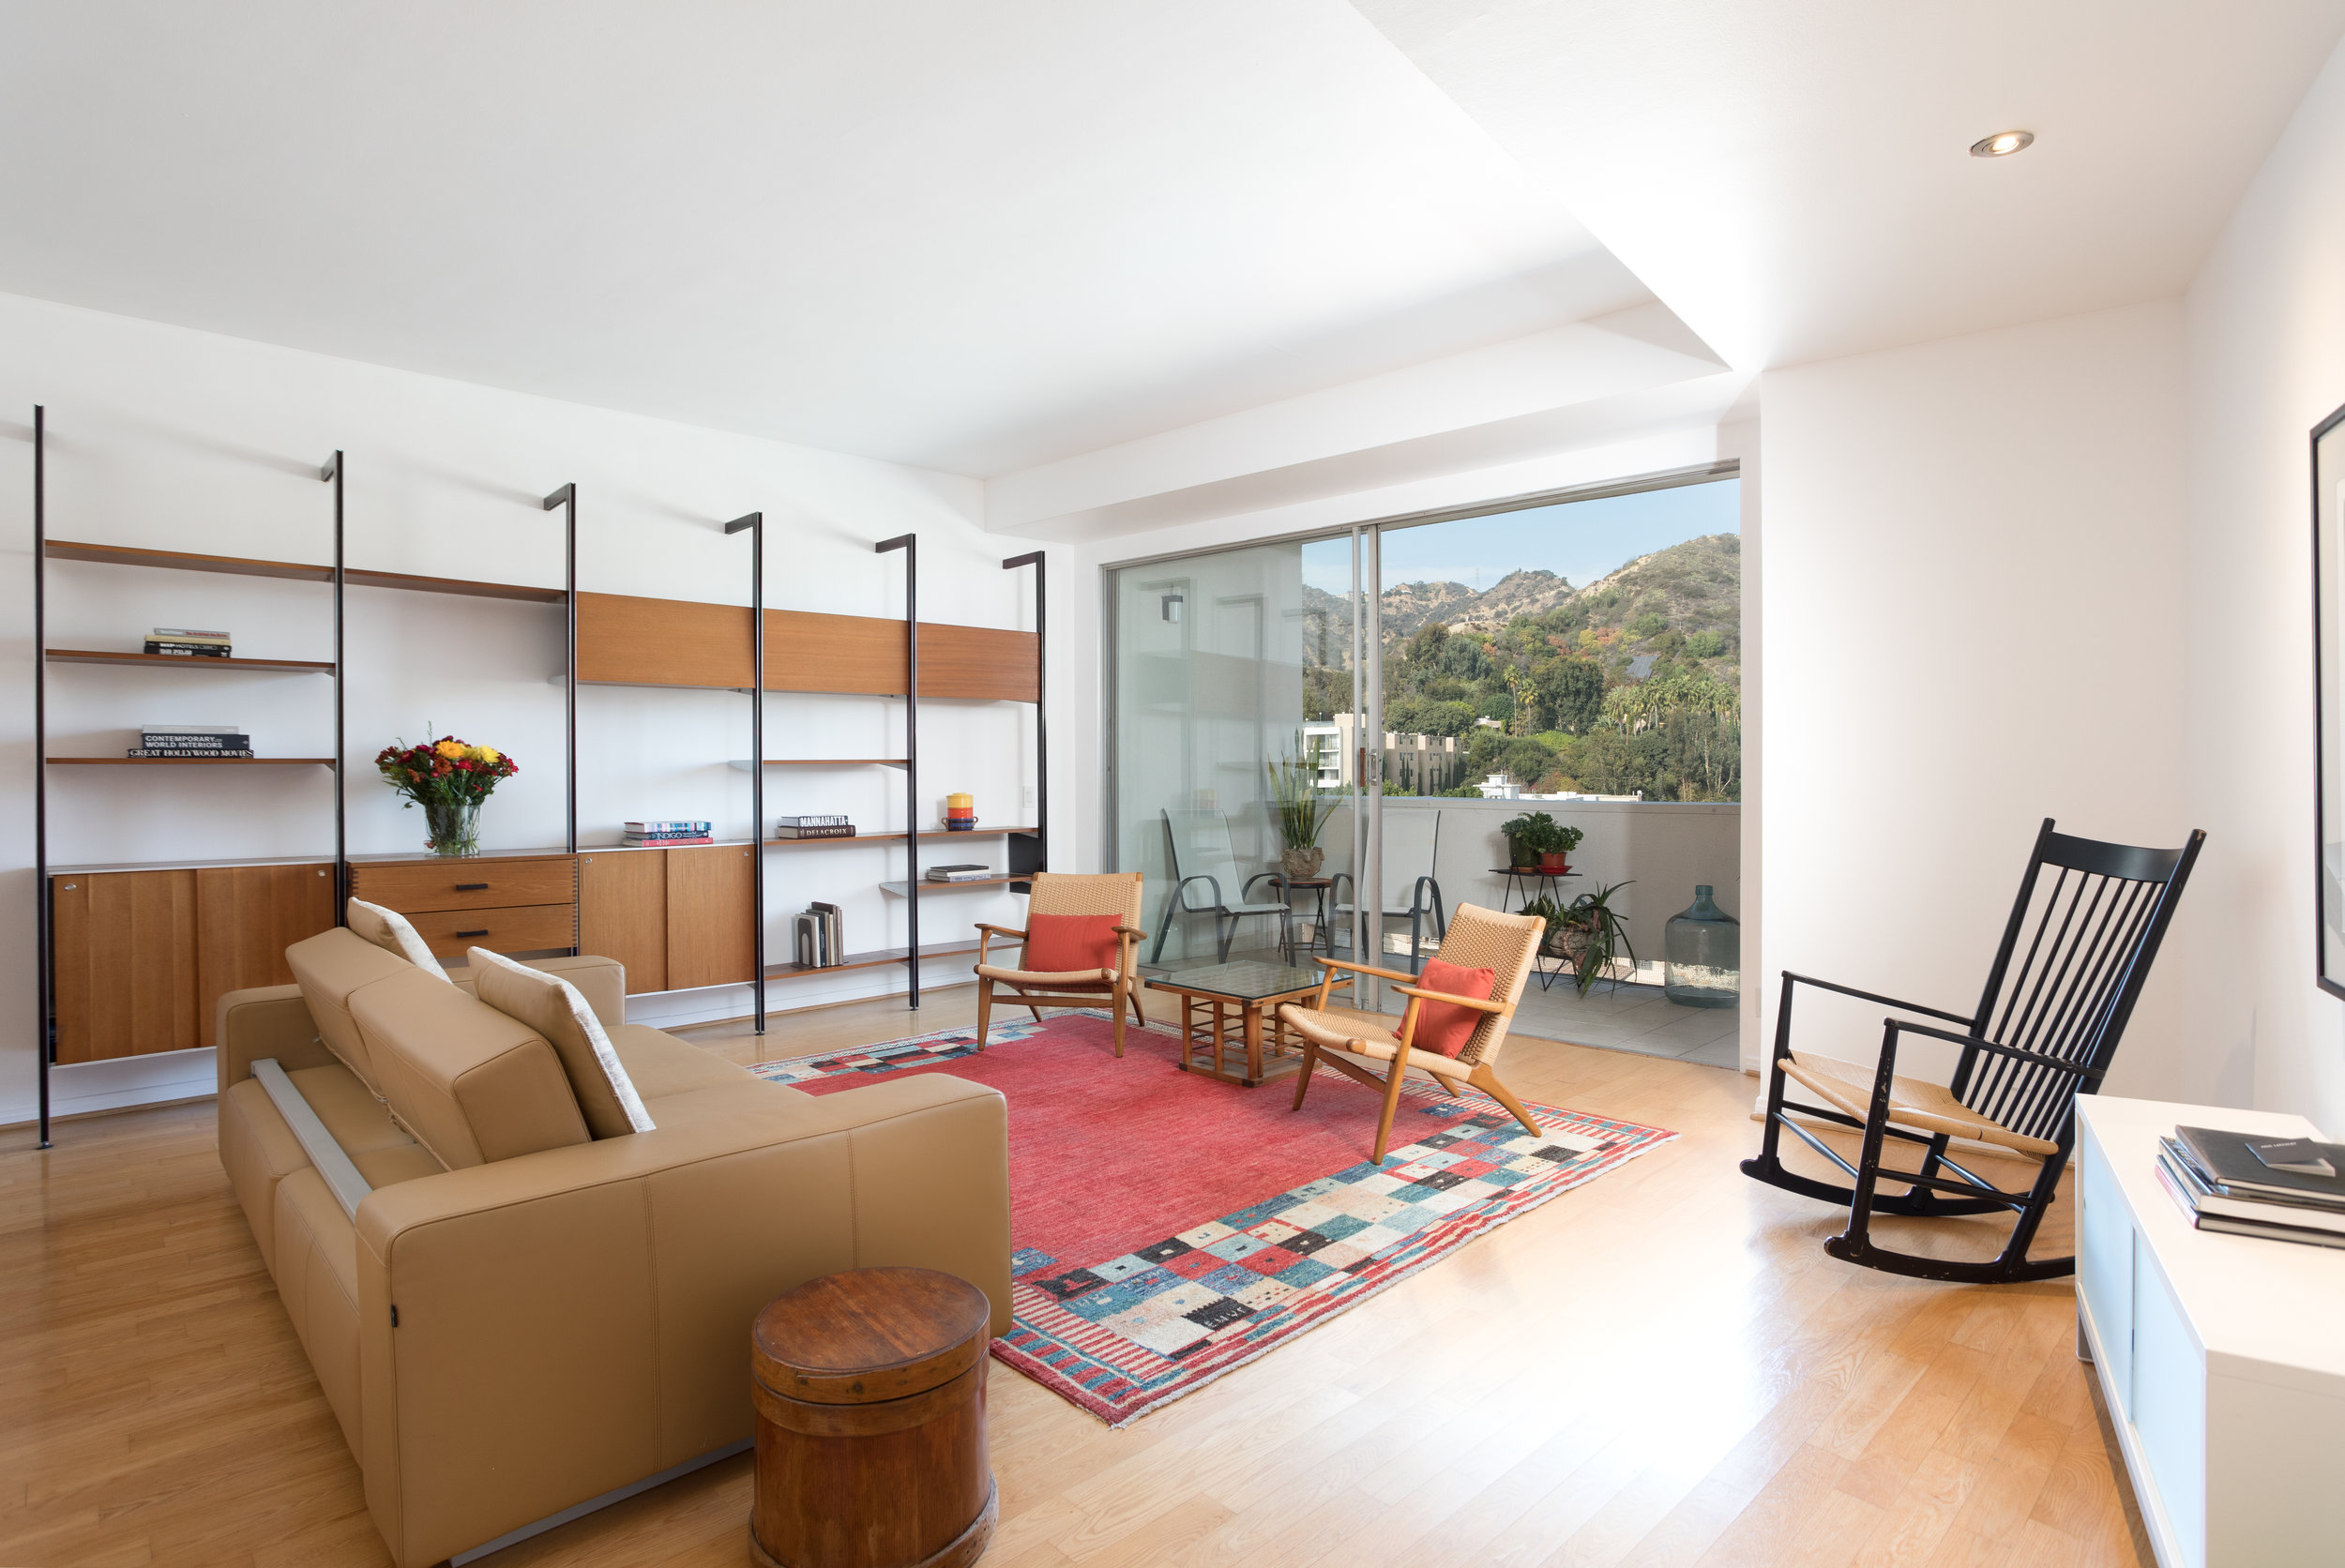 7250 Franklin Ave. #1105  $675,000 | SOLD |  FranklinTowers1105.com